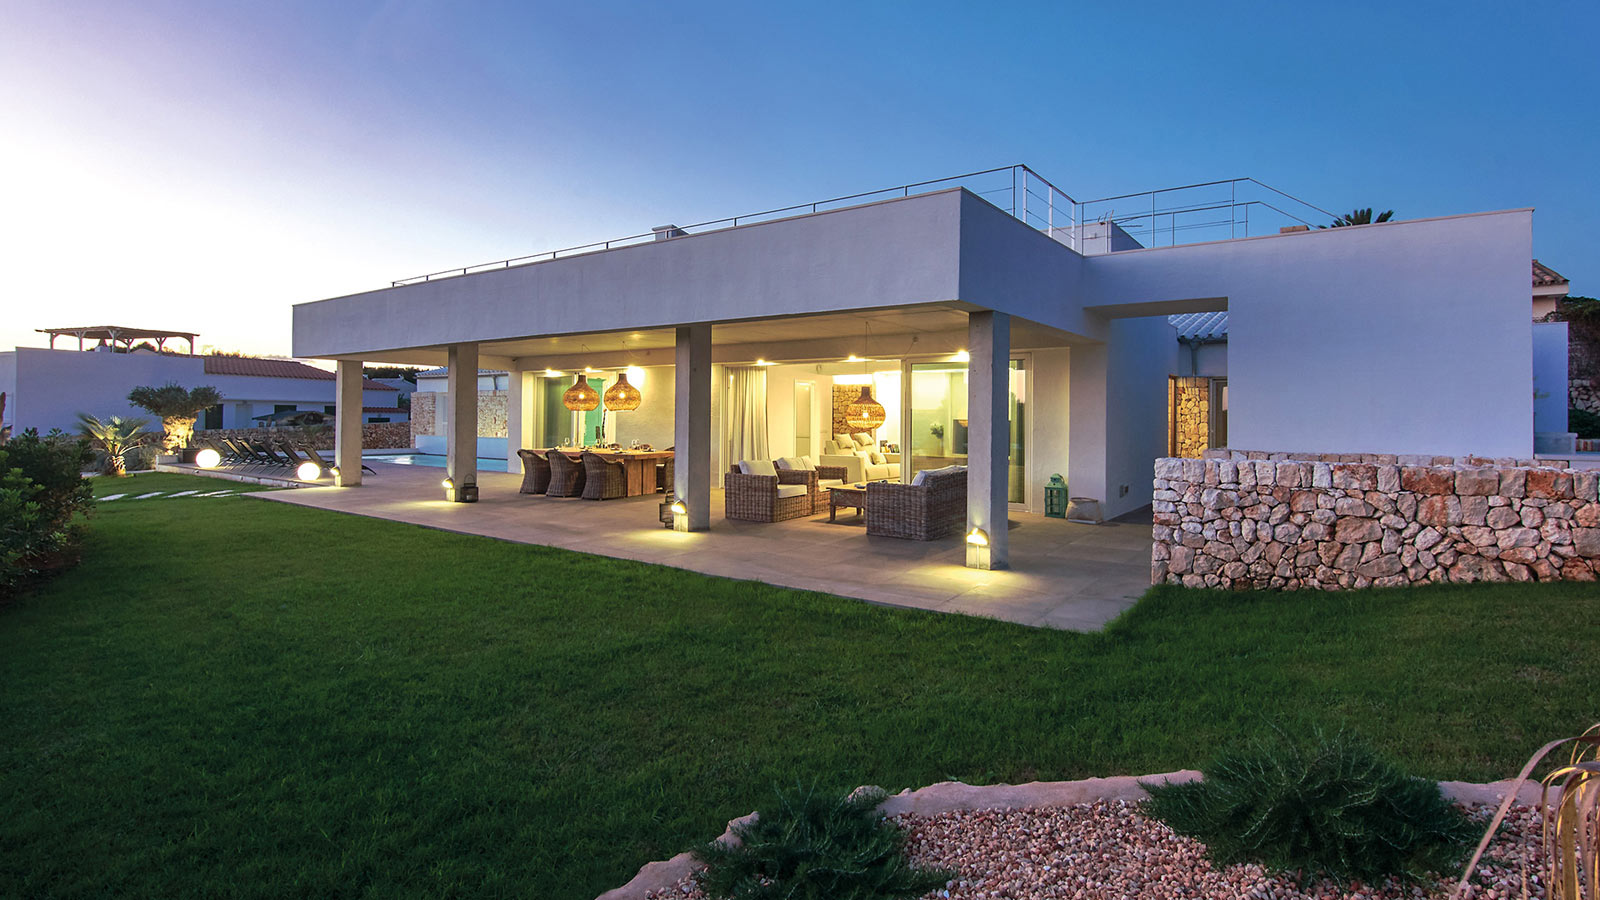 PORCELANOSA Group Projects: Greenbridge, the history of Menorca told through its stones